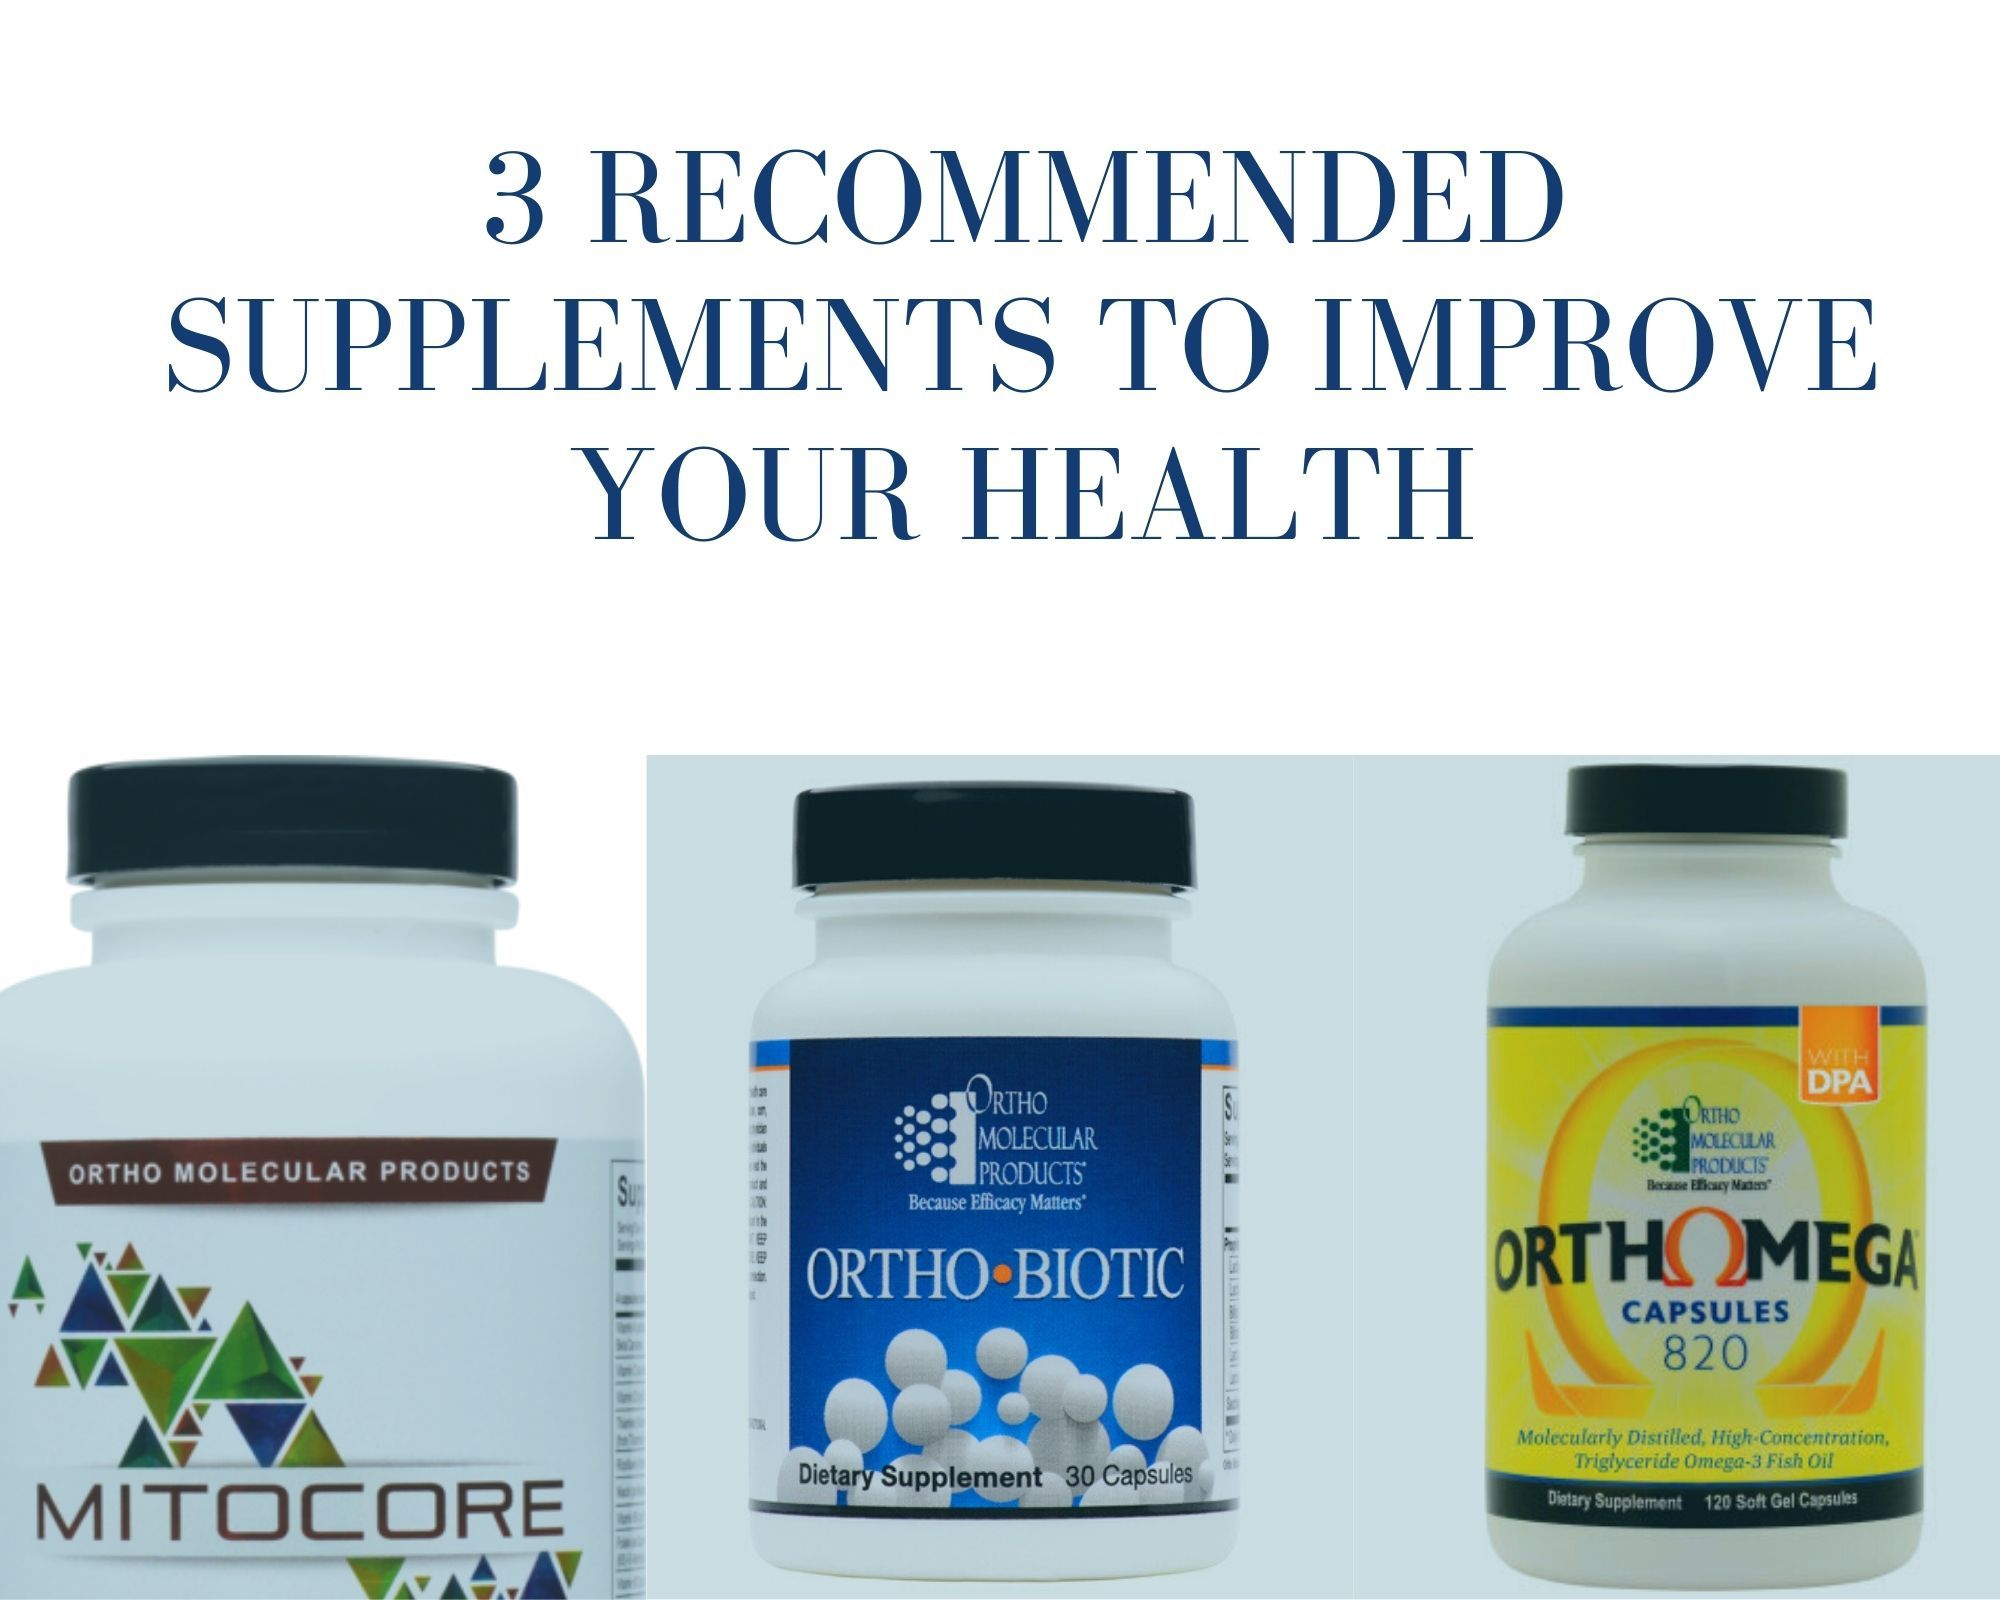 3 Recommended Supplements to Improve Your Health